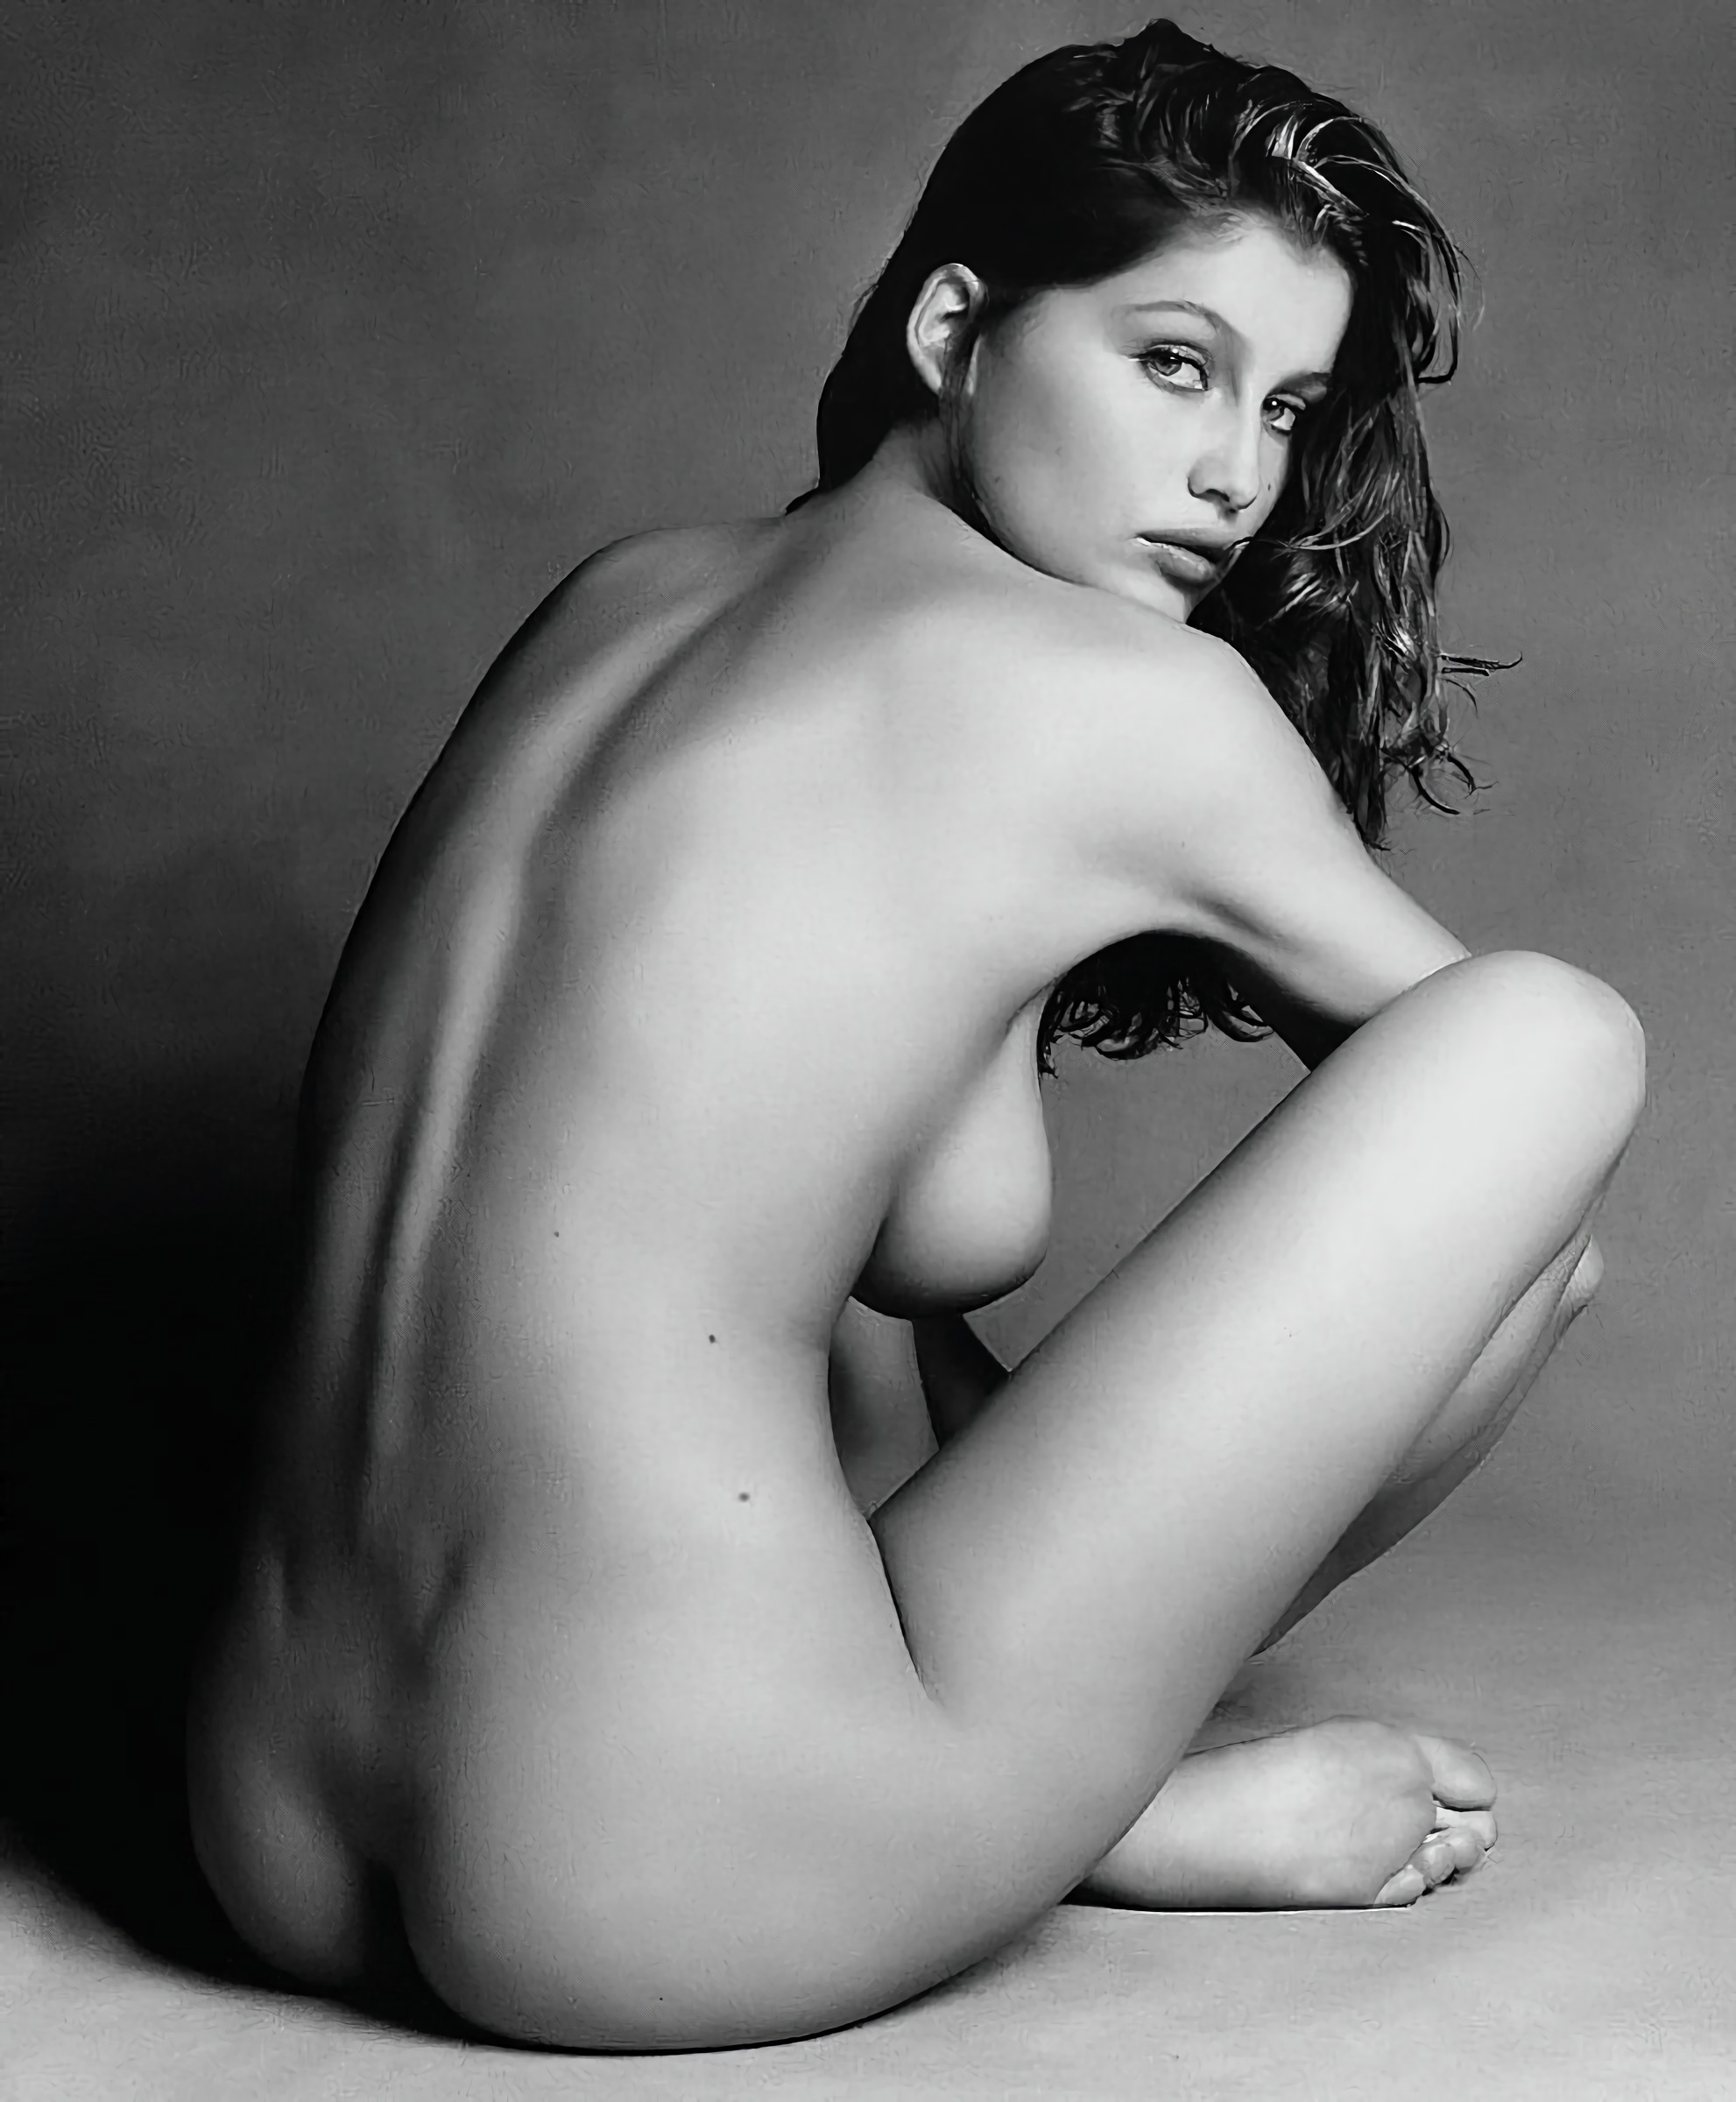 61 Hot Pictures Of Laetitia Casta Will Hypnotise You With Her Exquisite Body